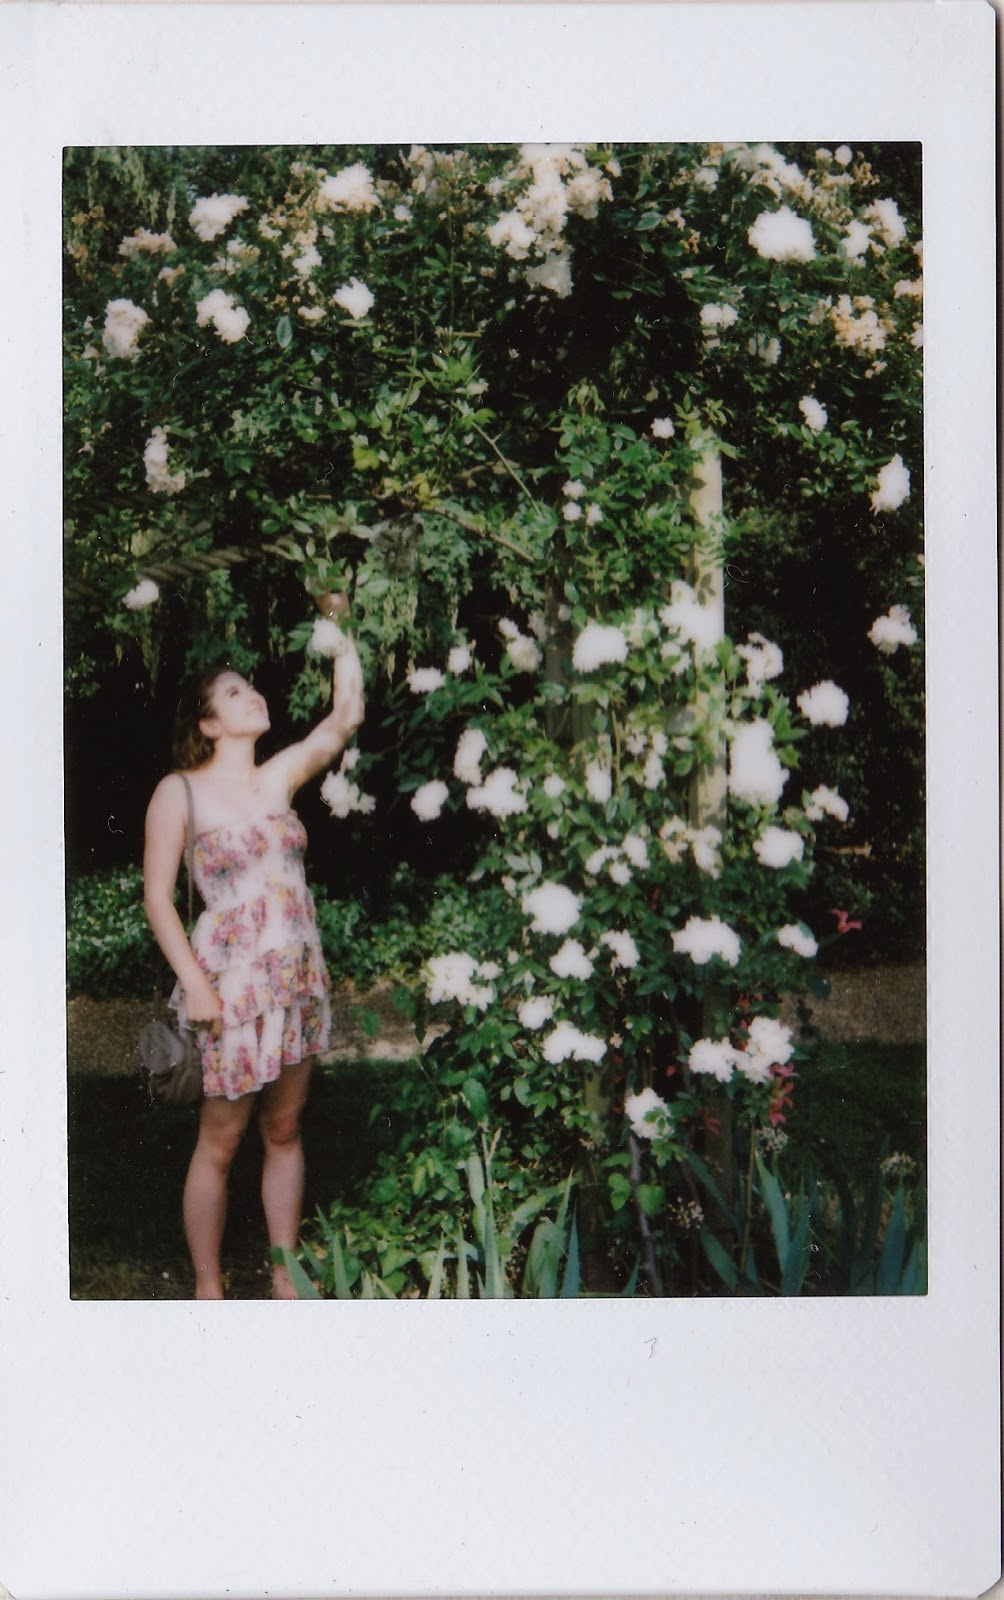 polaroid of flowers